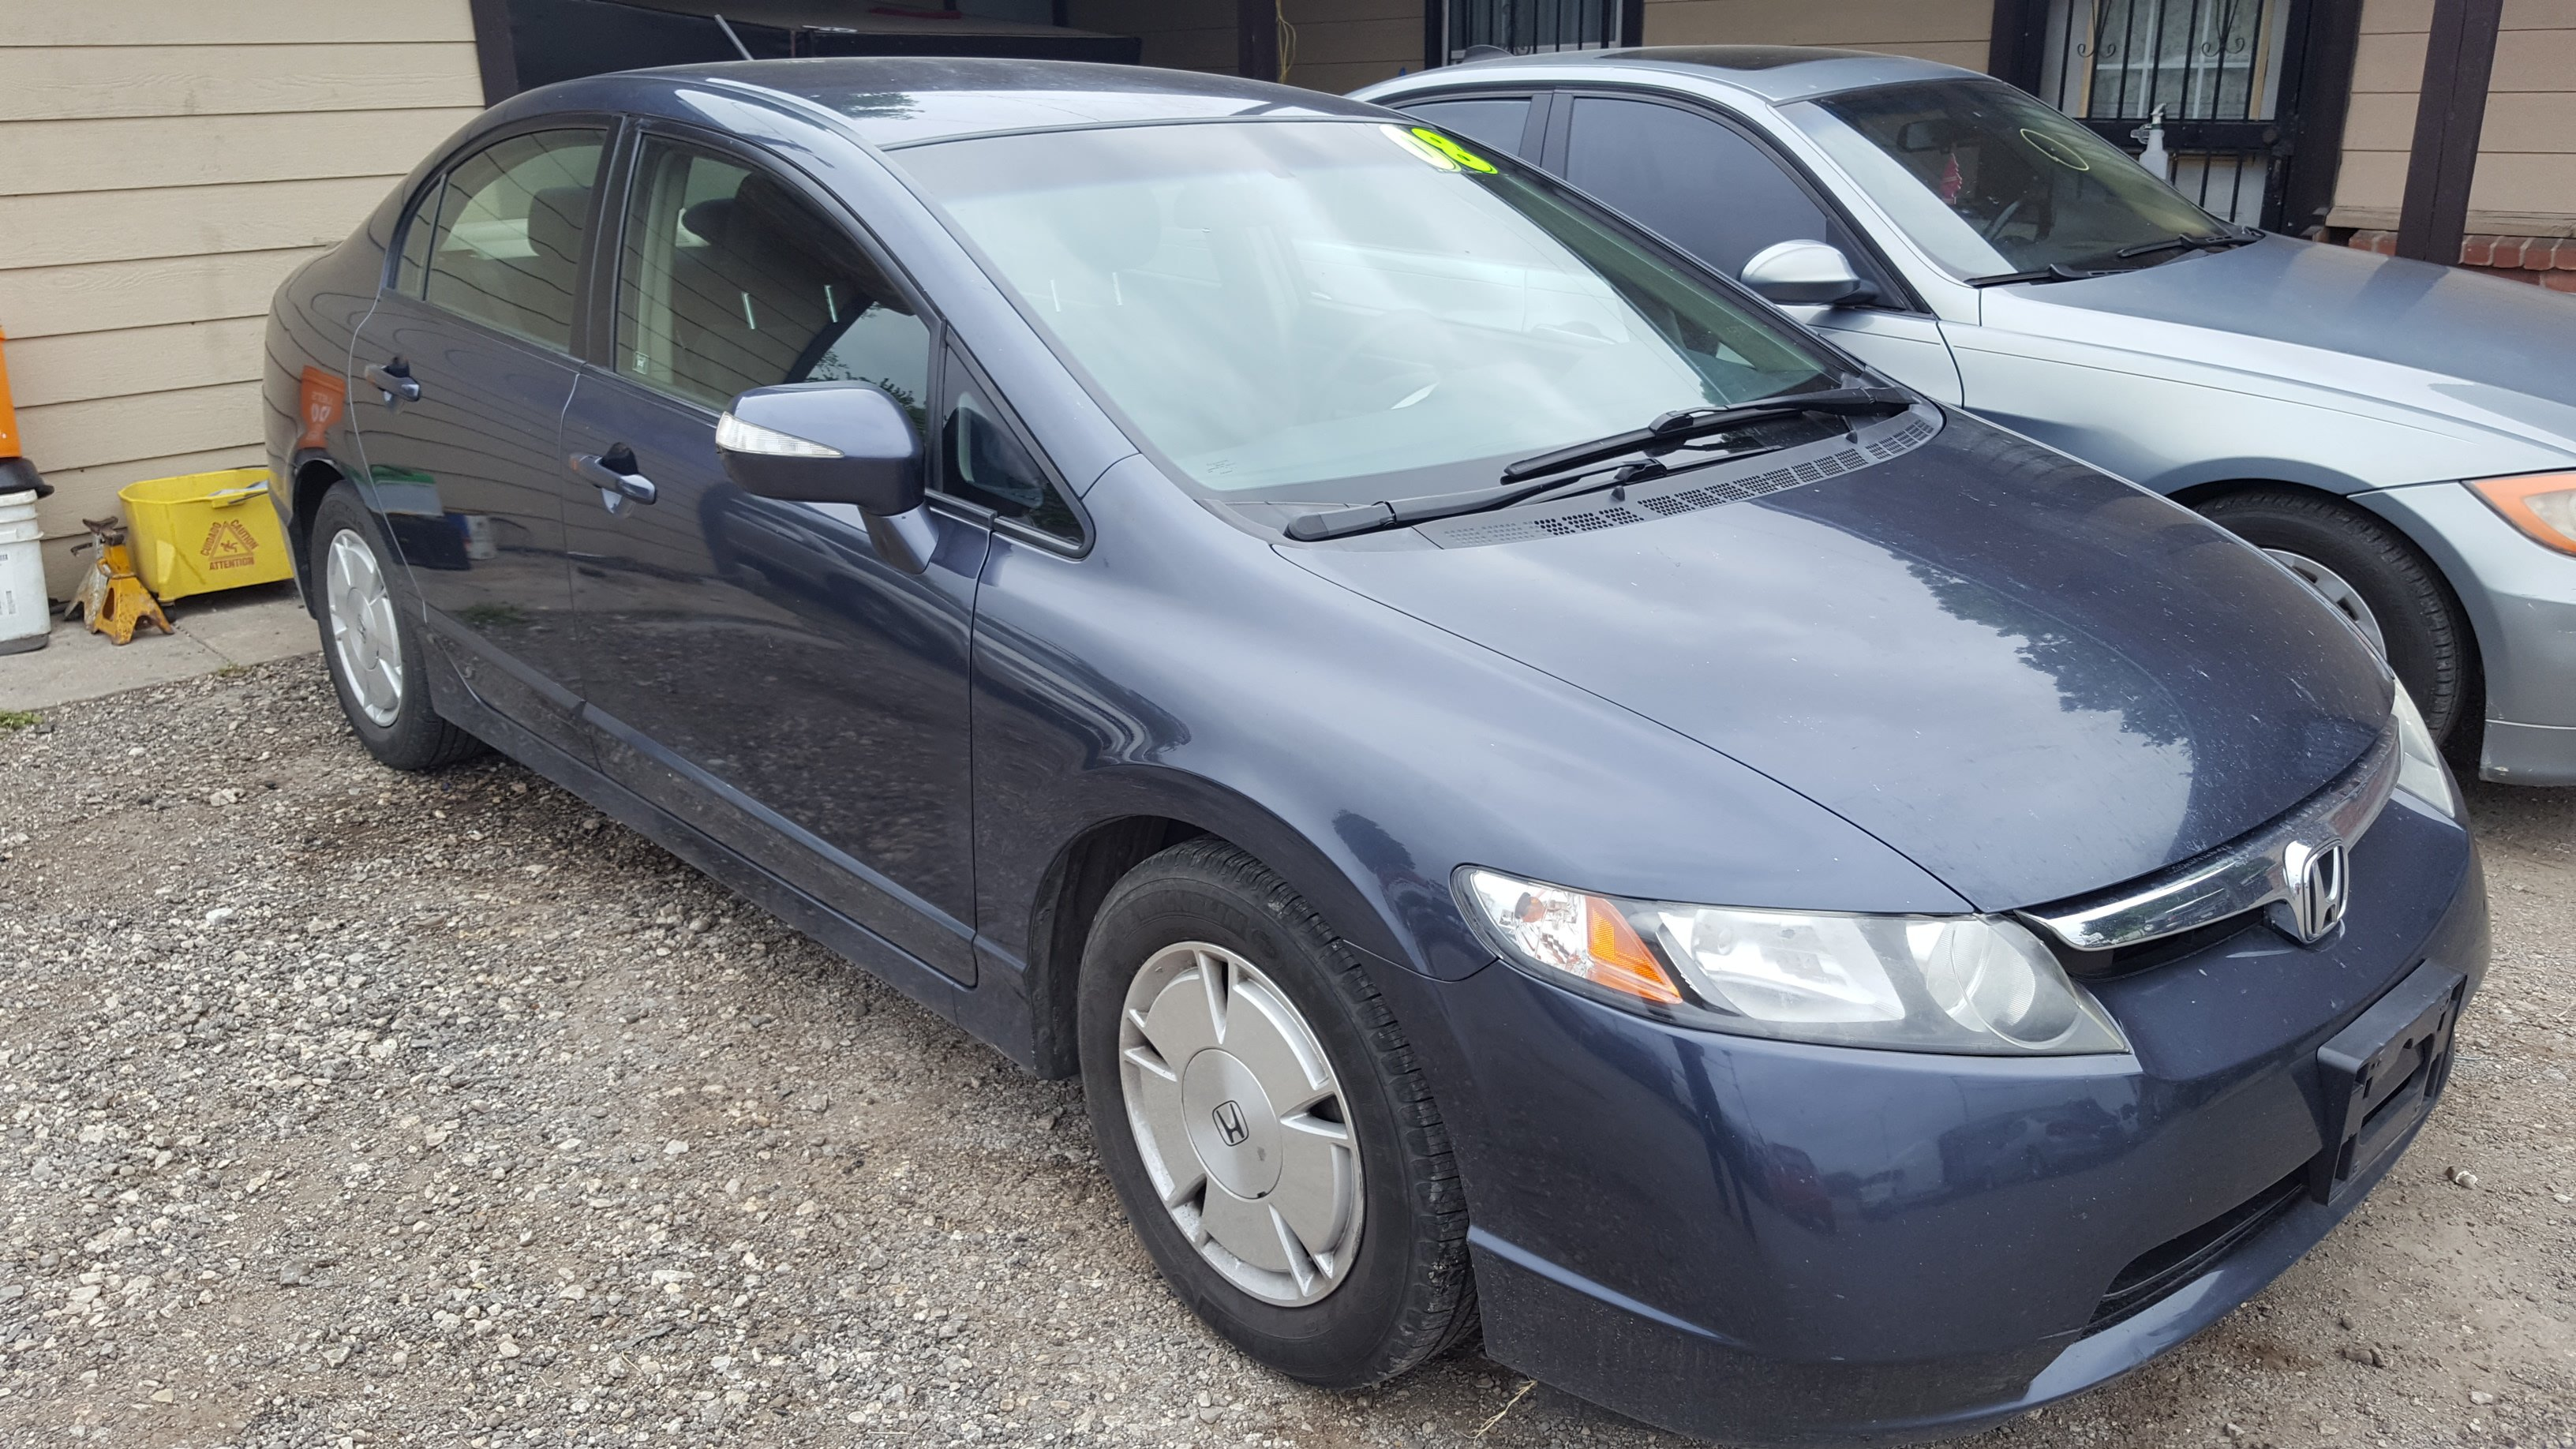 2008 HONDA CIVIC HYBRID  $4,550.00